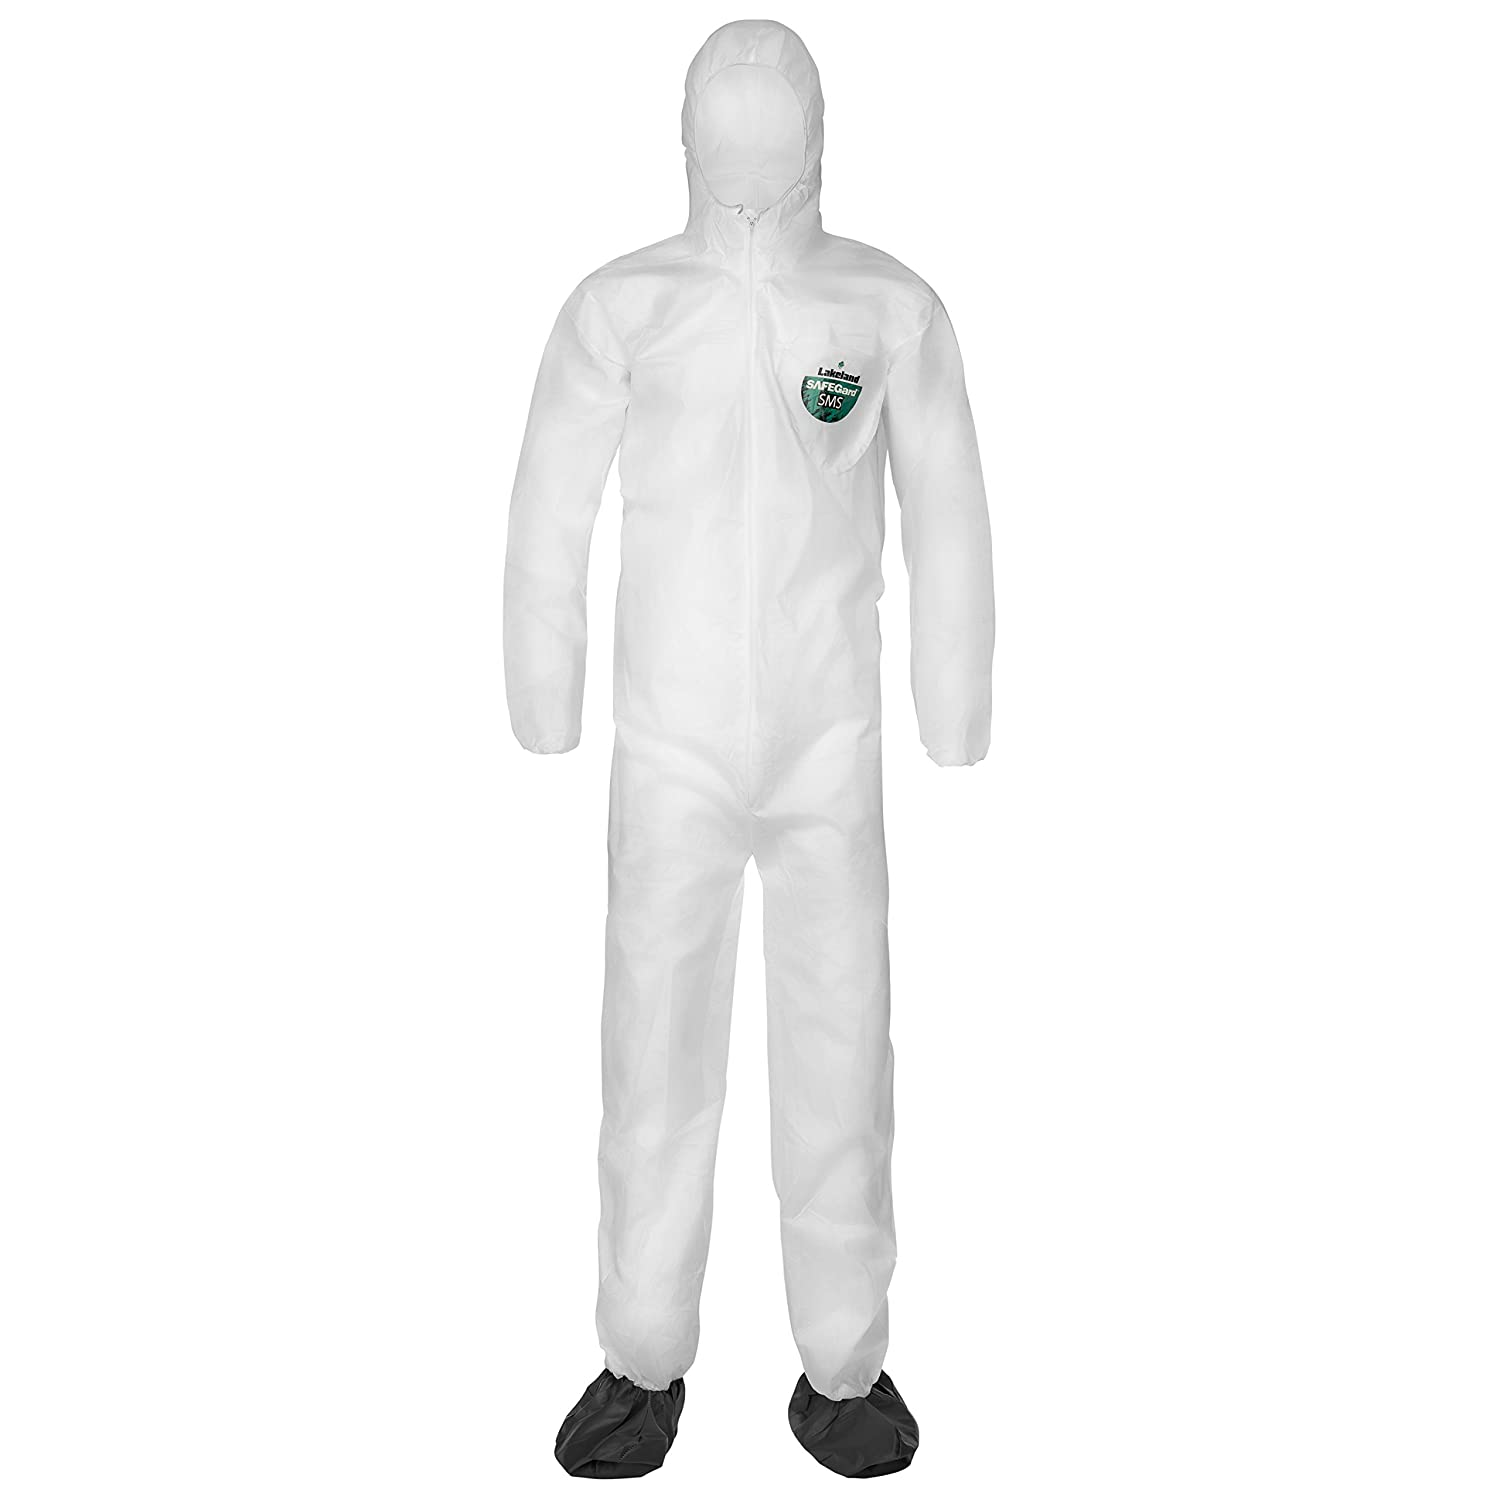 Elastic Cuff Blue Lakeland Industries Inc E8414-2XB Disposable Lakeland SafeGard Economy SMS Coverall with Hood and Boots 2X-Large Case of 25